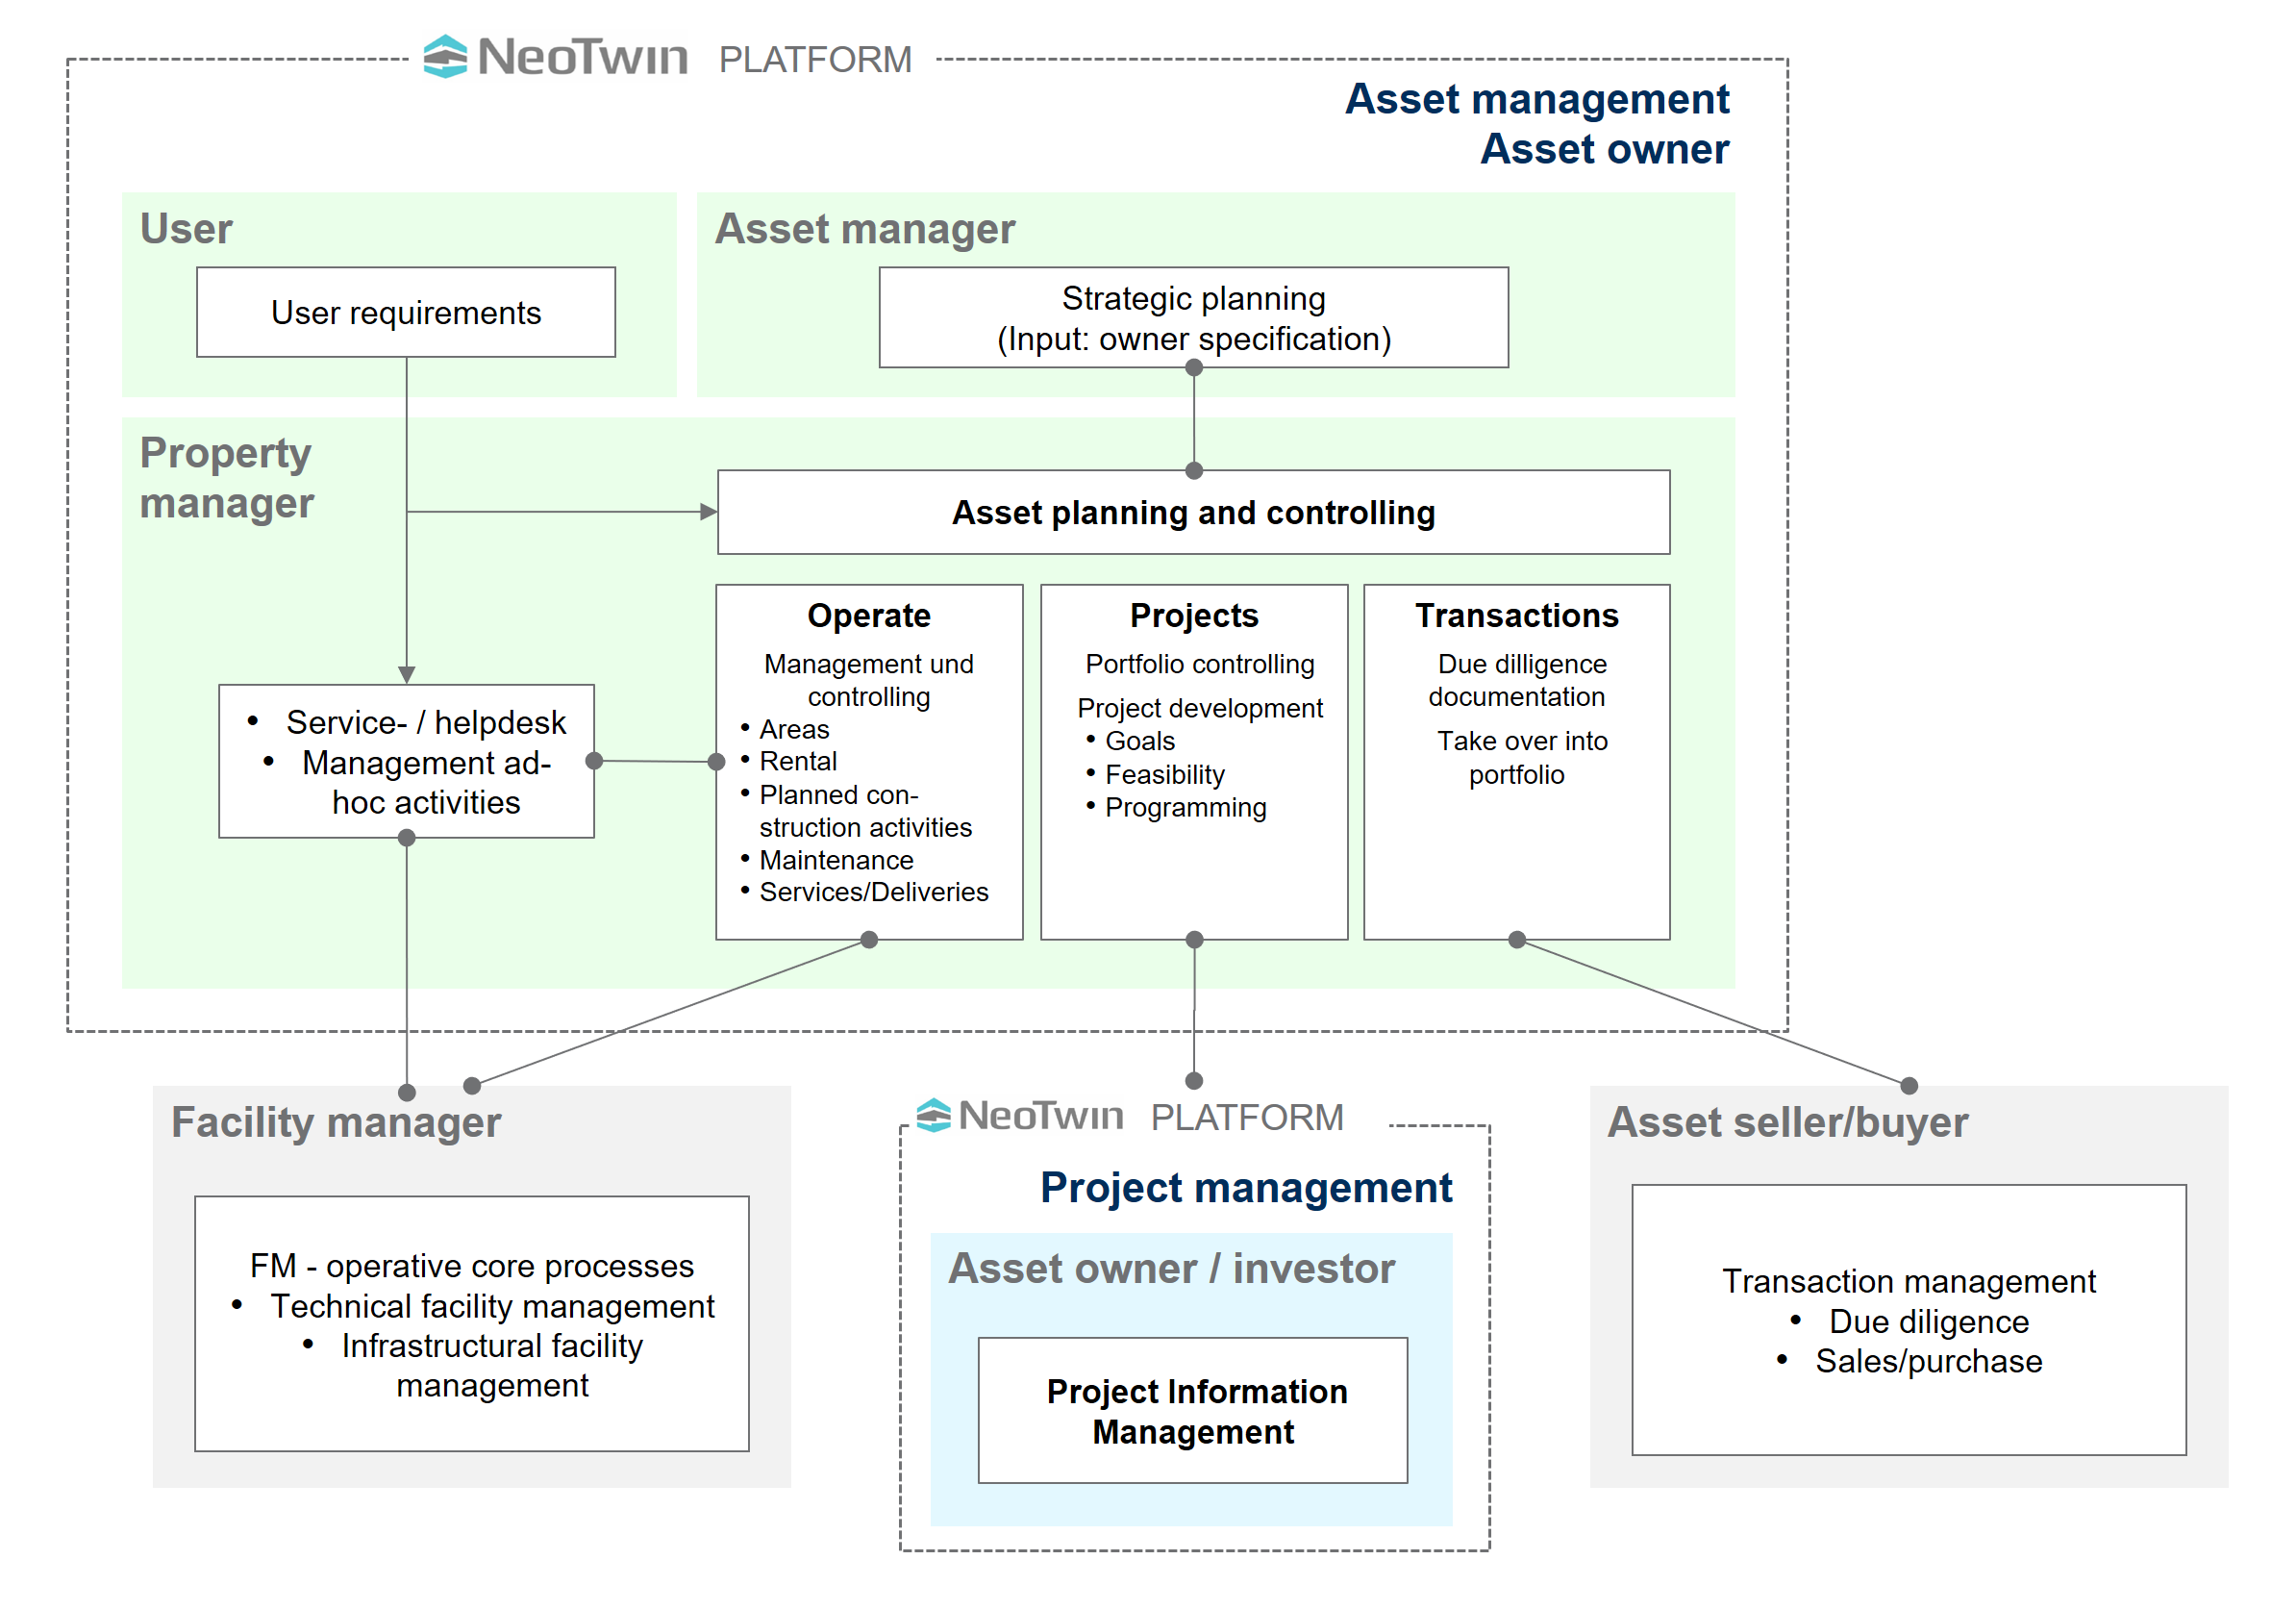 NeoTwin Asset Management